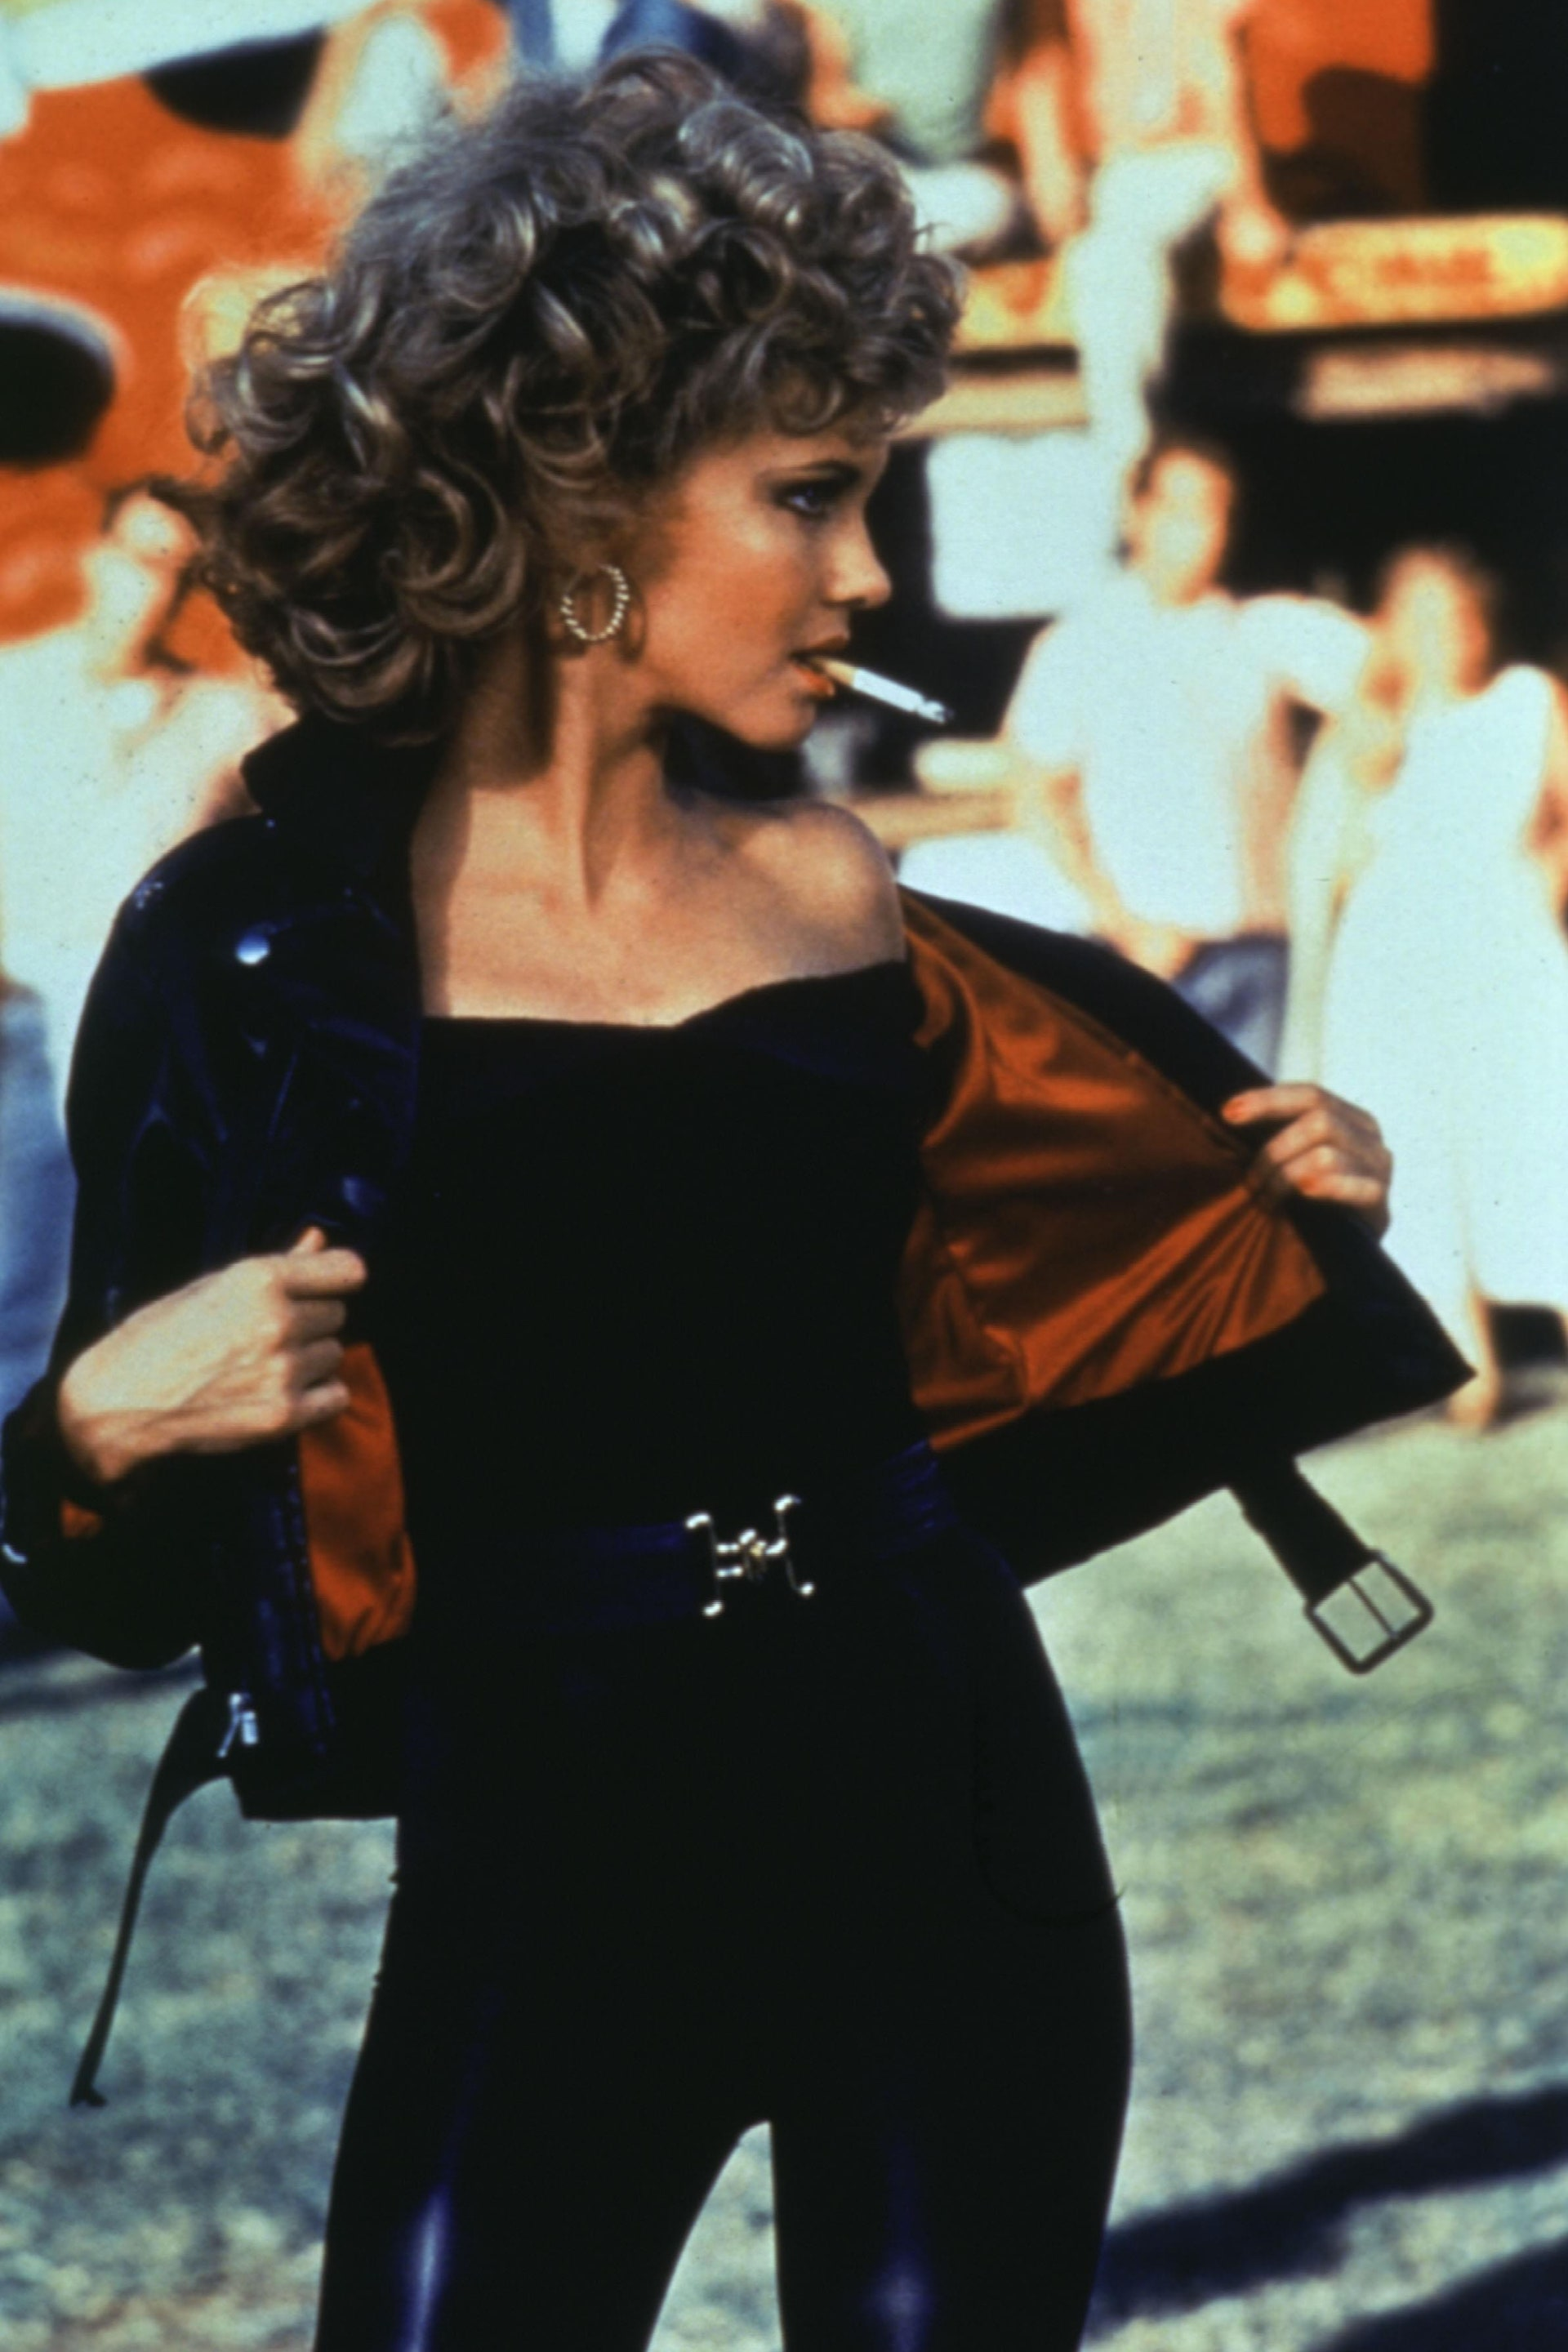 [Image Description: Sandy Olsson from Grease (1978) wearing a black body suit and jacket with a cigarette in her mouth.] via Paramount Pictures